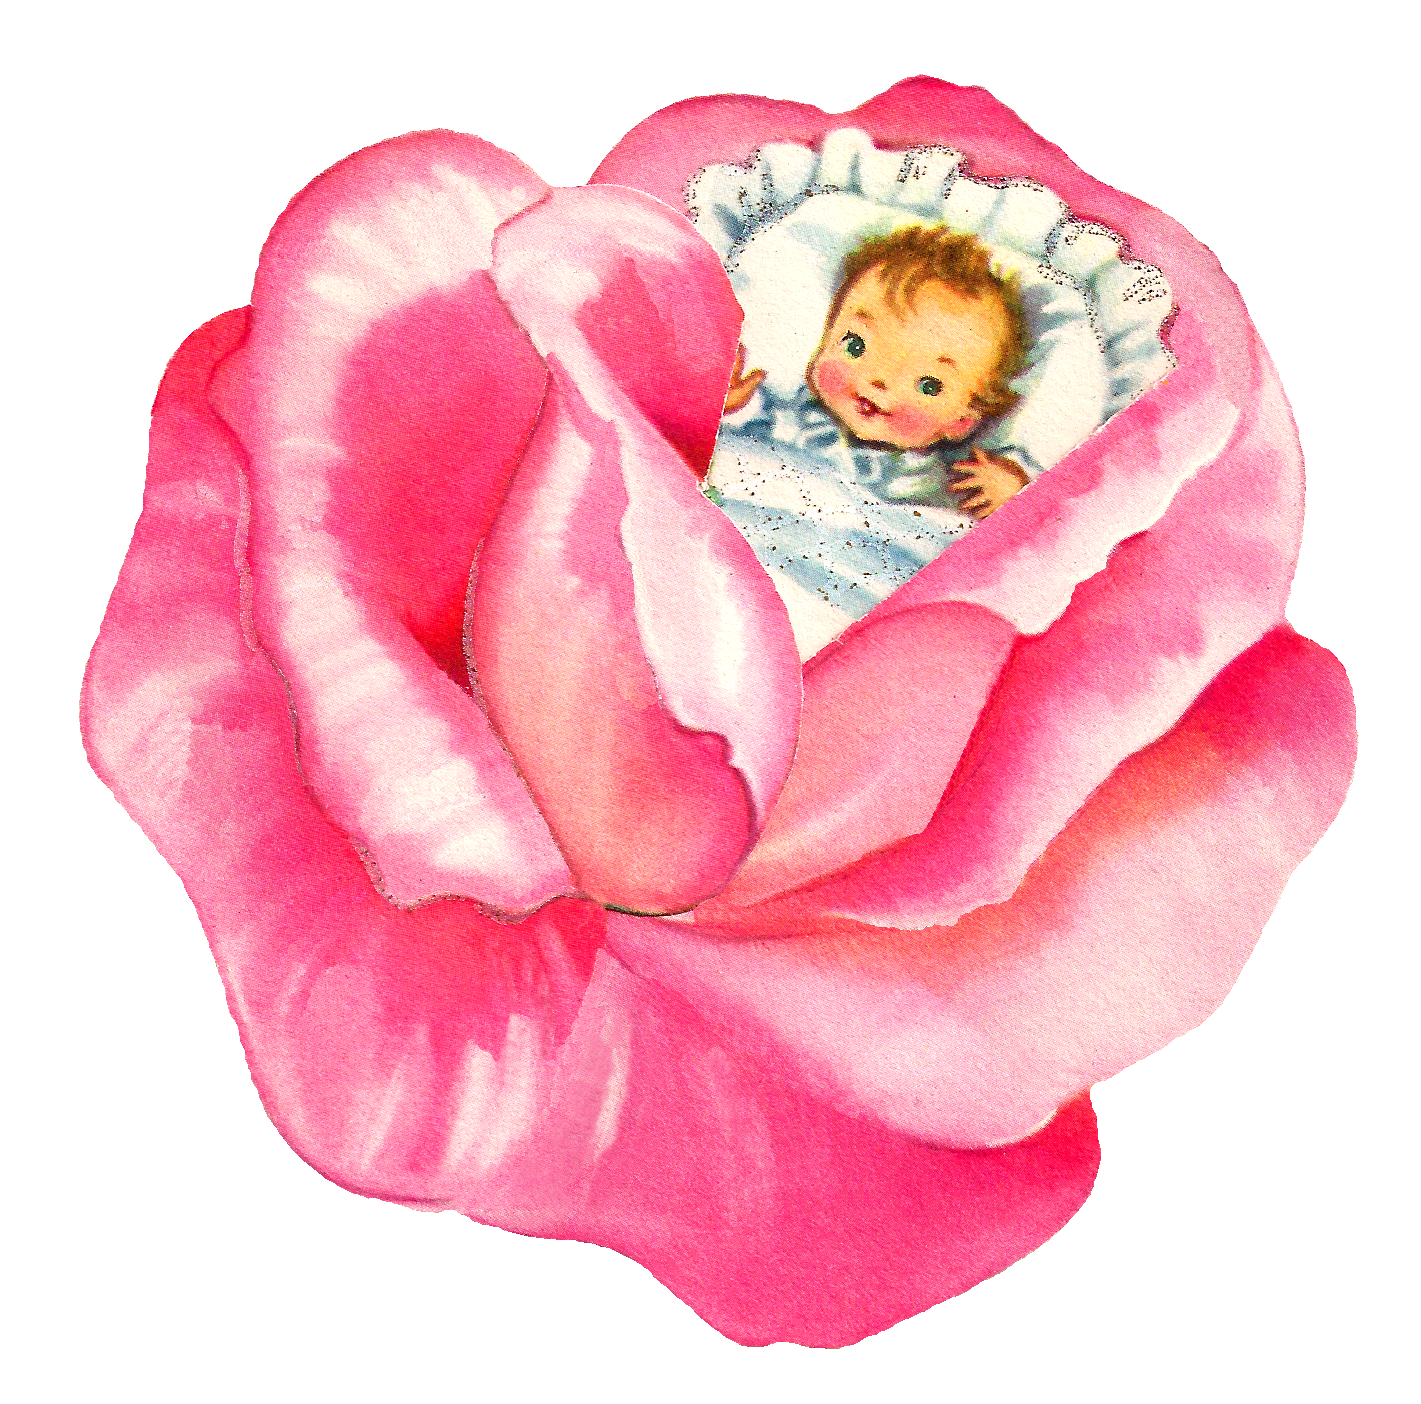 Antique images girl pink. Clipart roses baby